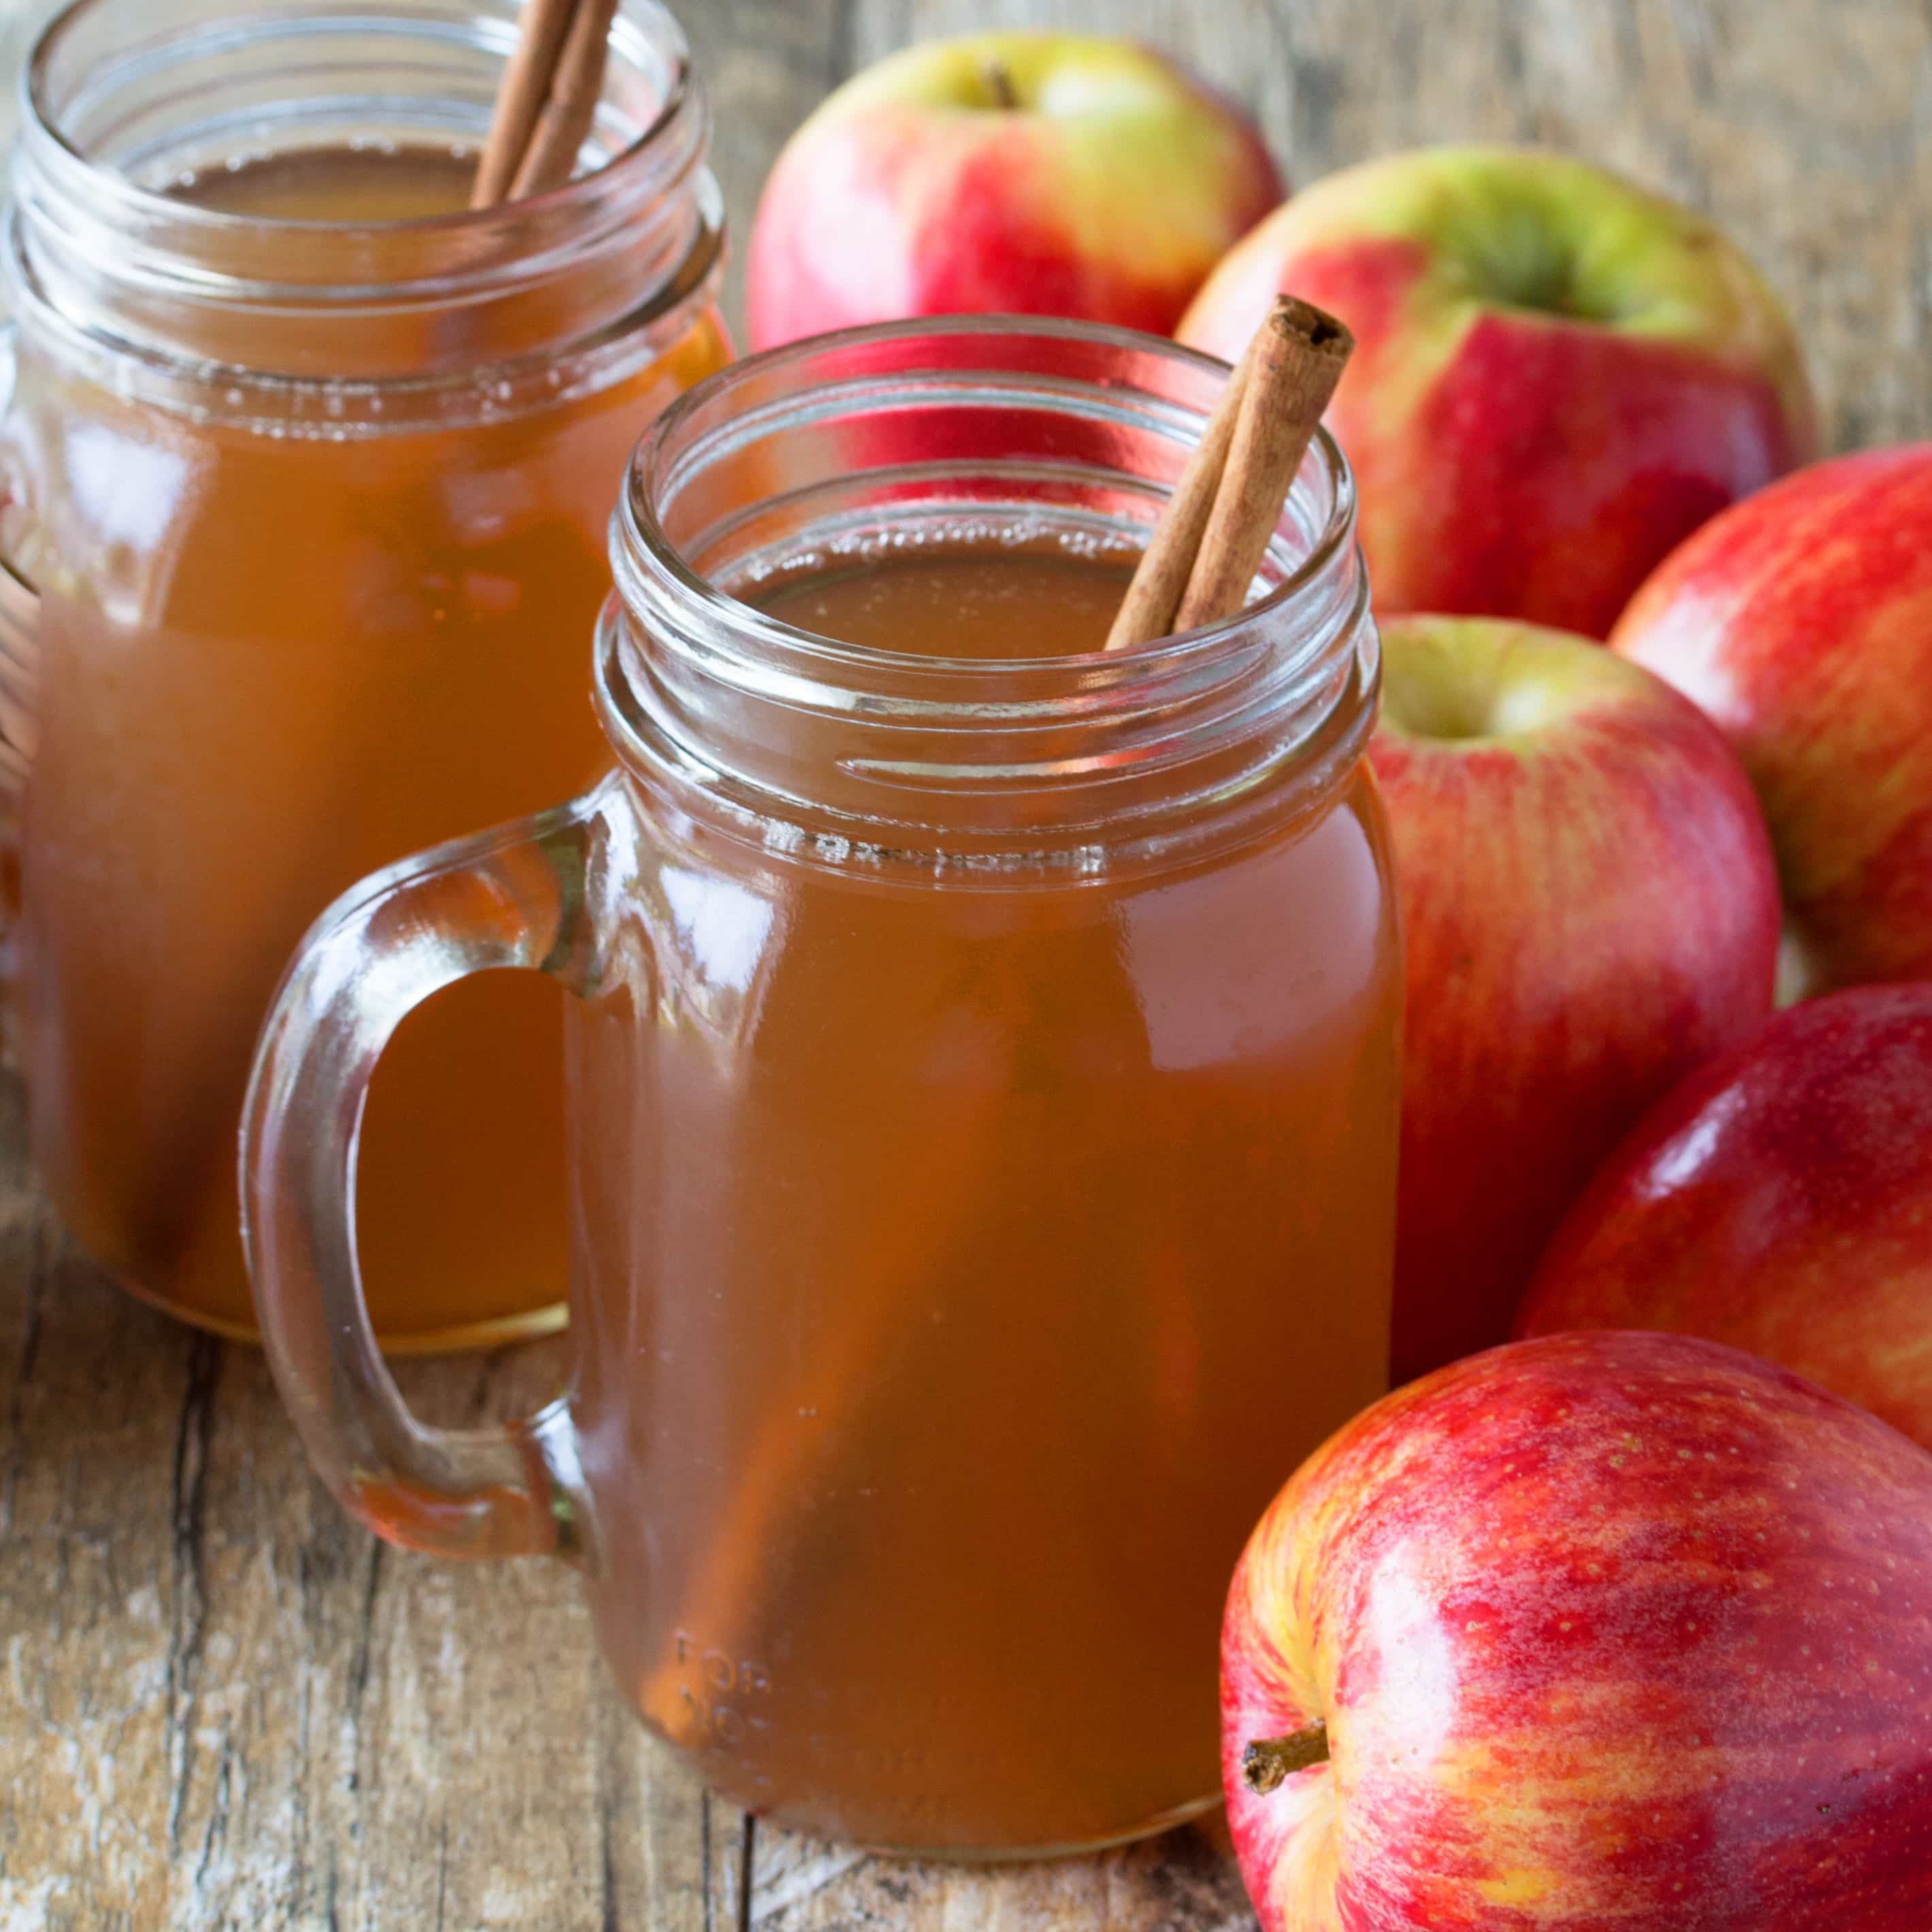 Slow Cooker Apple Cider Made From Scratch